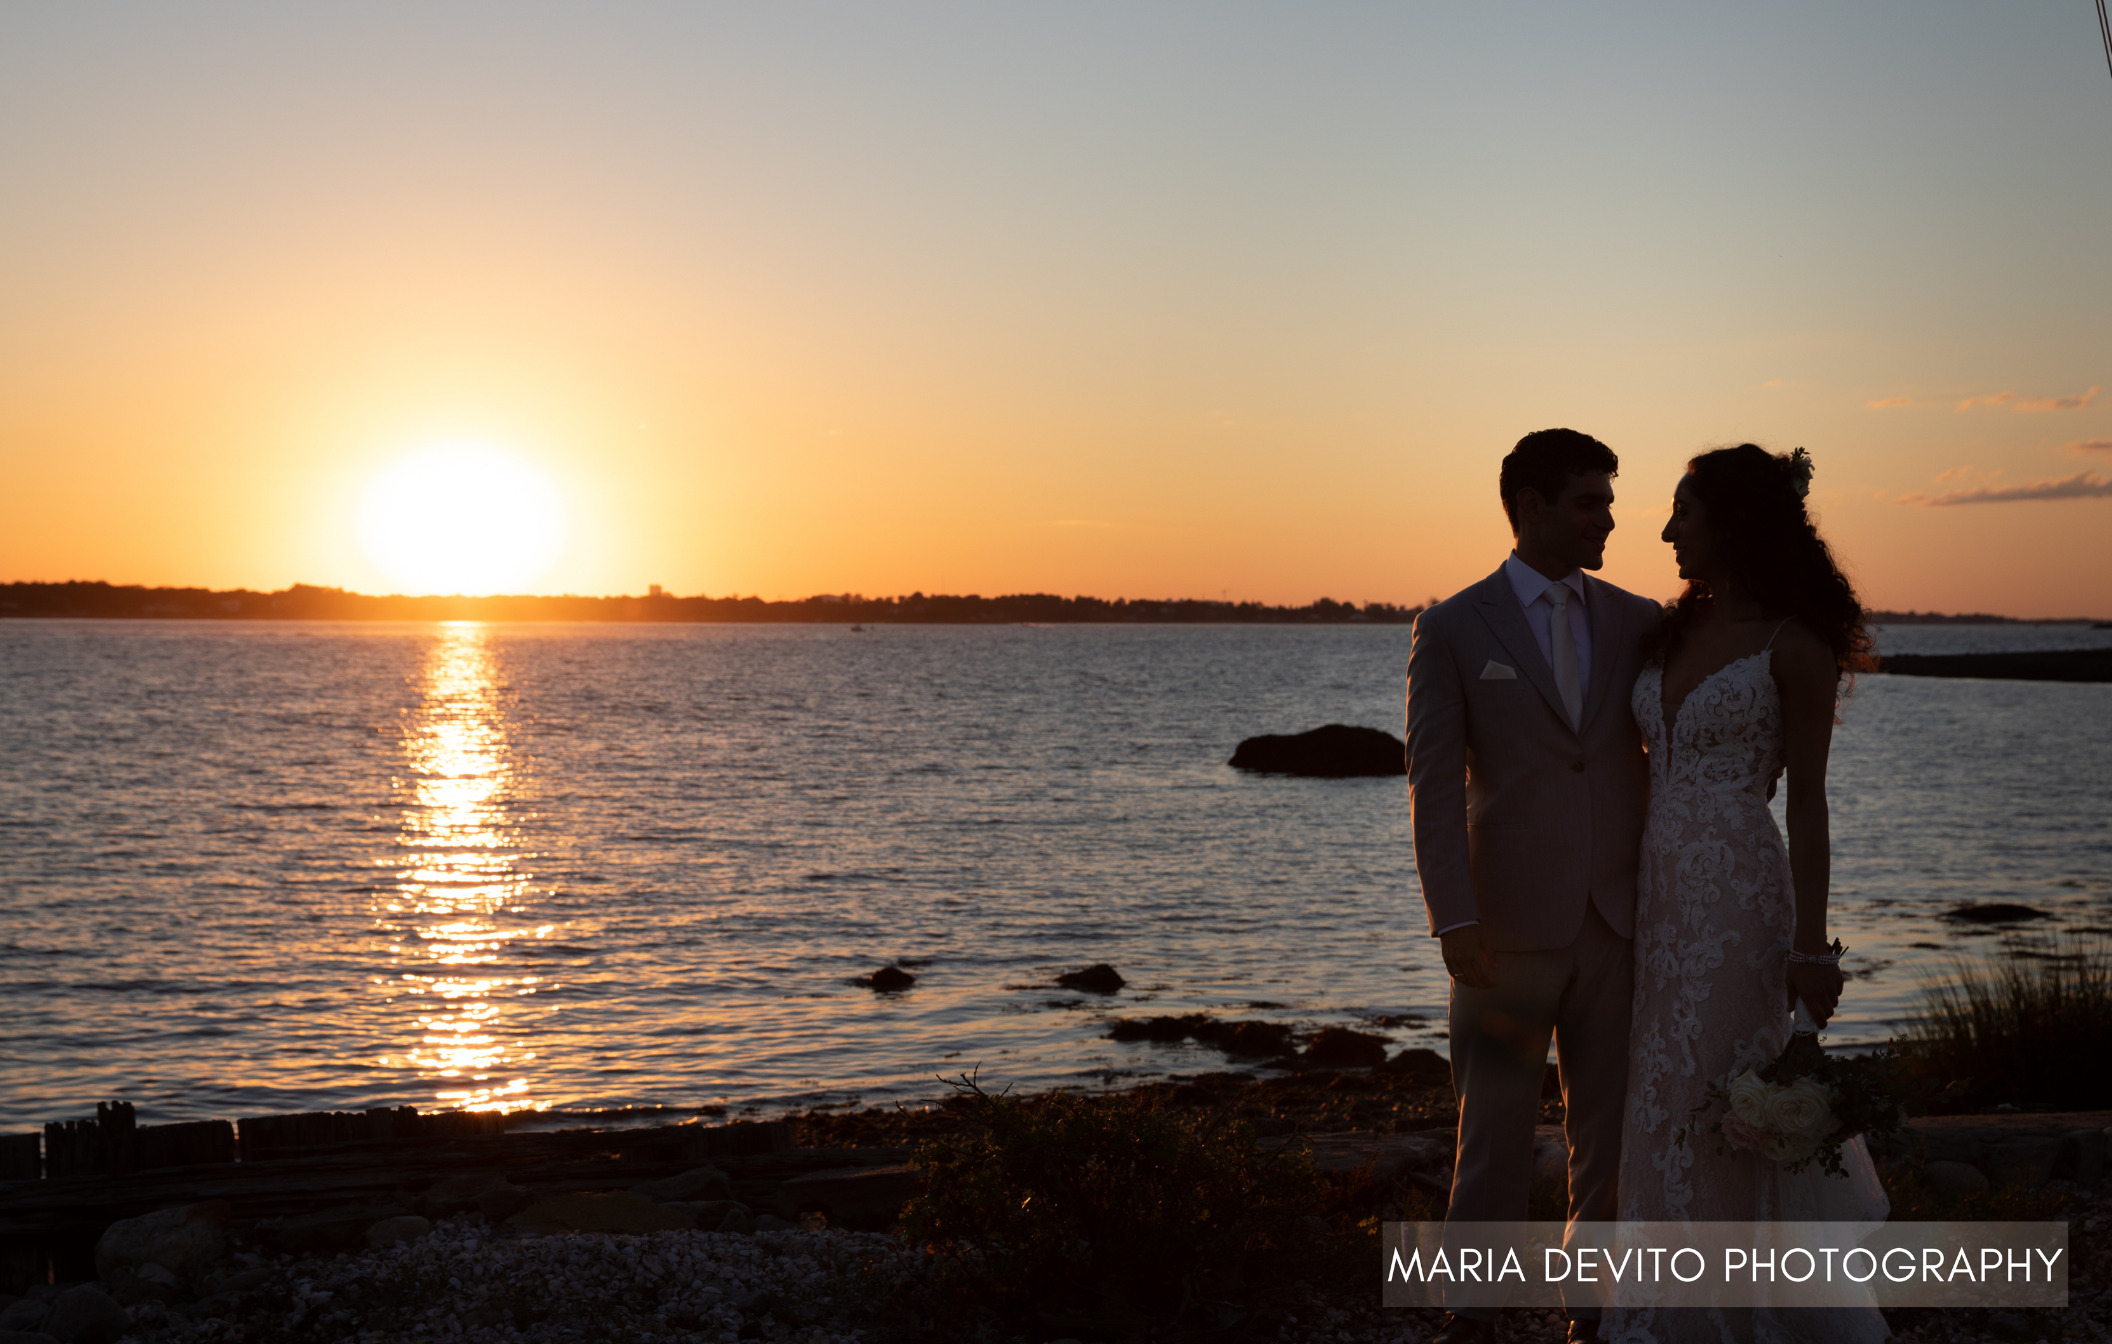 Bride and groom holding eyes while embracing in front of ocean sunset during golden hour